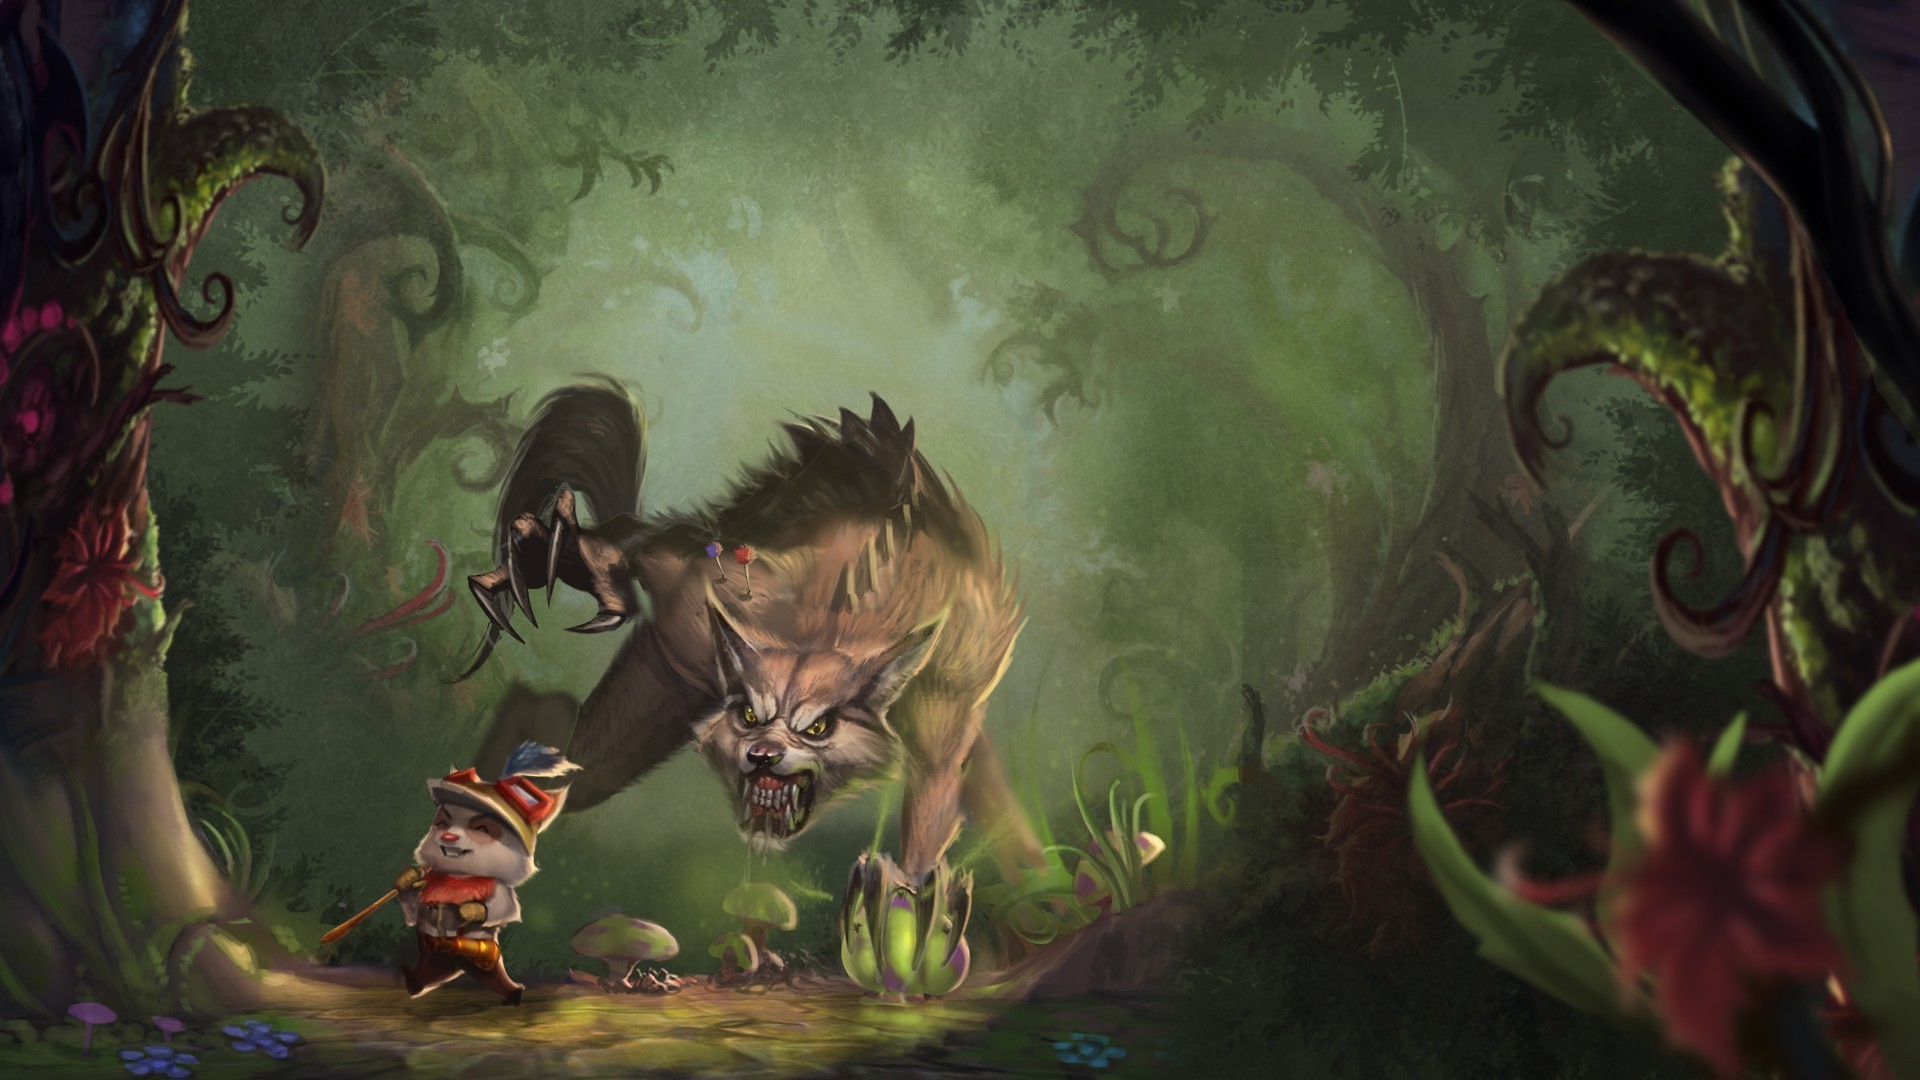 Free Download Teemo And Warwick League Of Legends Wallpaper 4061